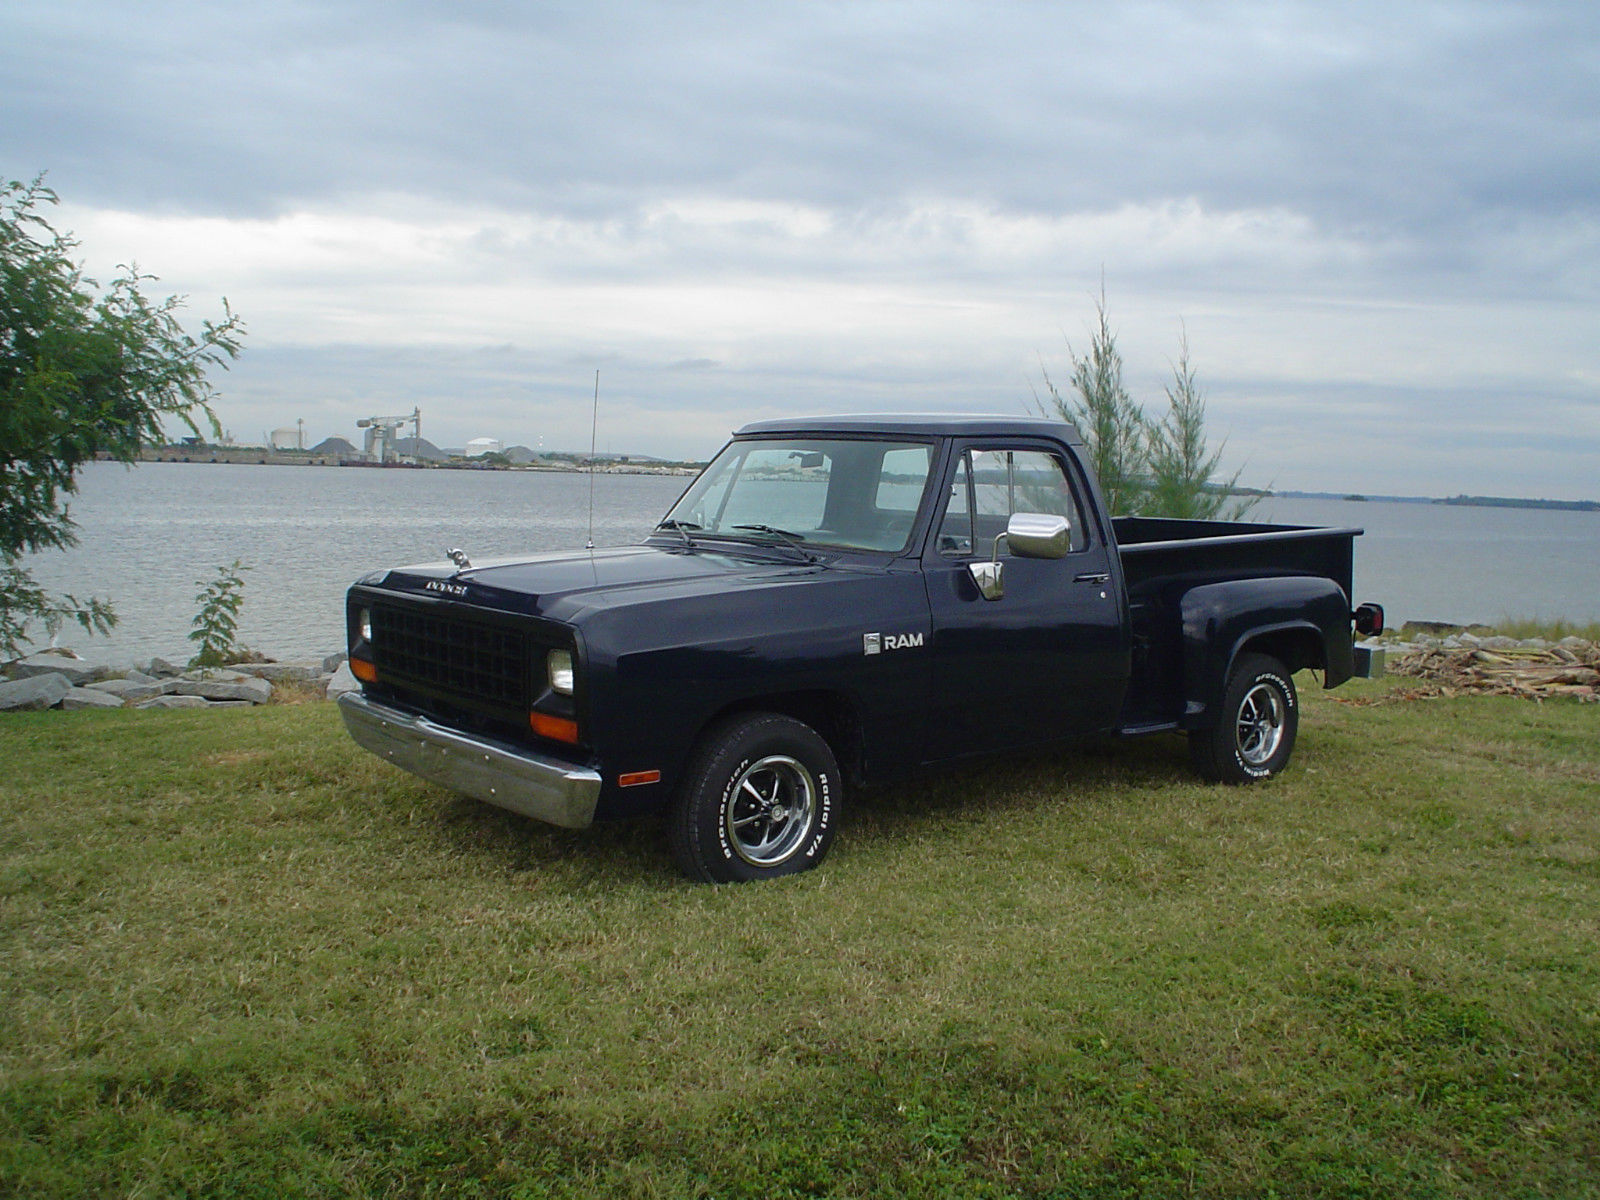 Six Door Truck For Sale >> 1981 DODGE D150 STEPSIDE 61,807 MILES. 6CLY. 4 SPEED - Classic Dodge Other Pickups 1981 for sale